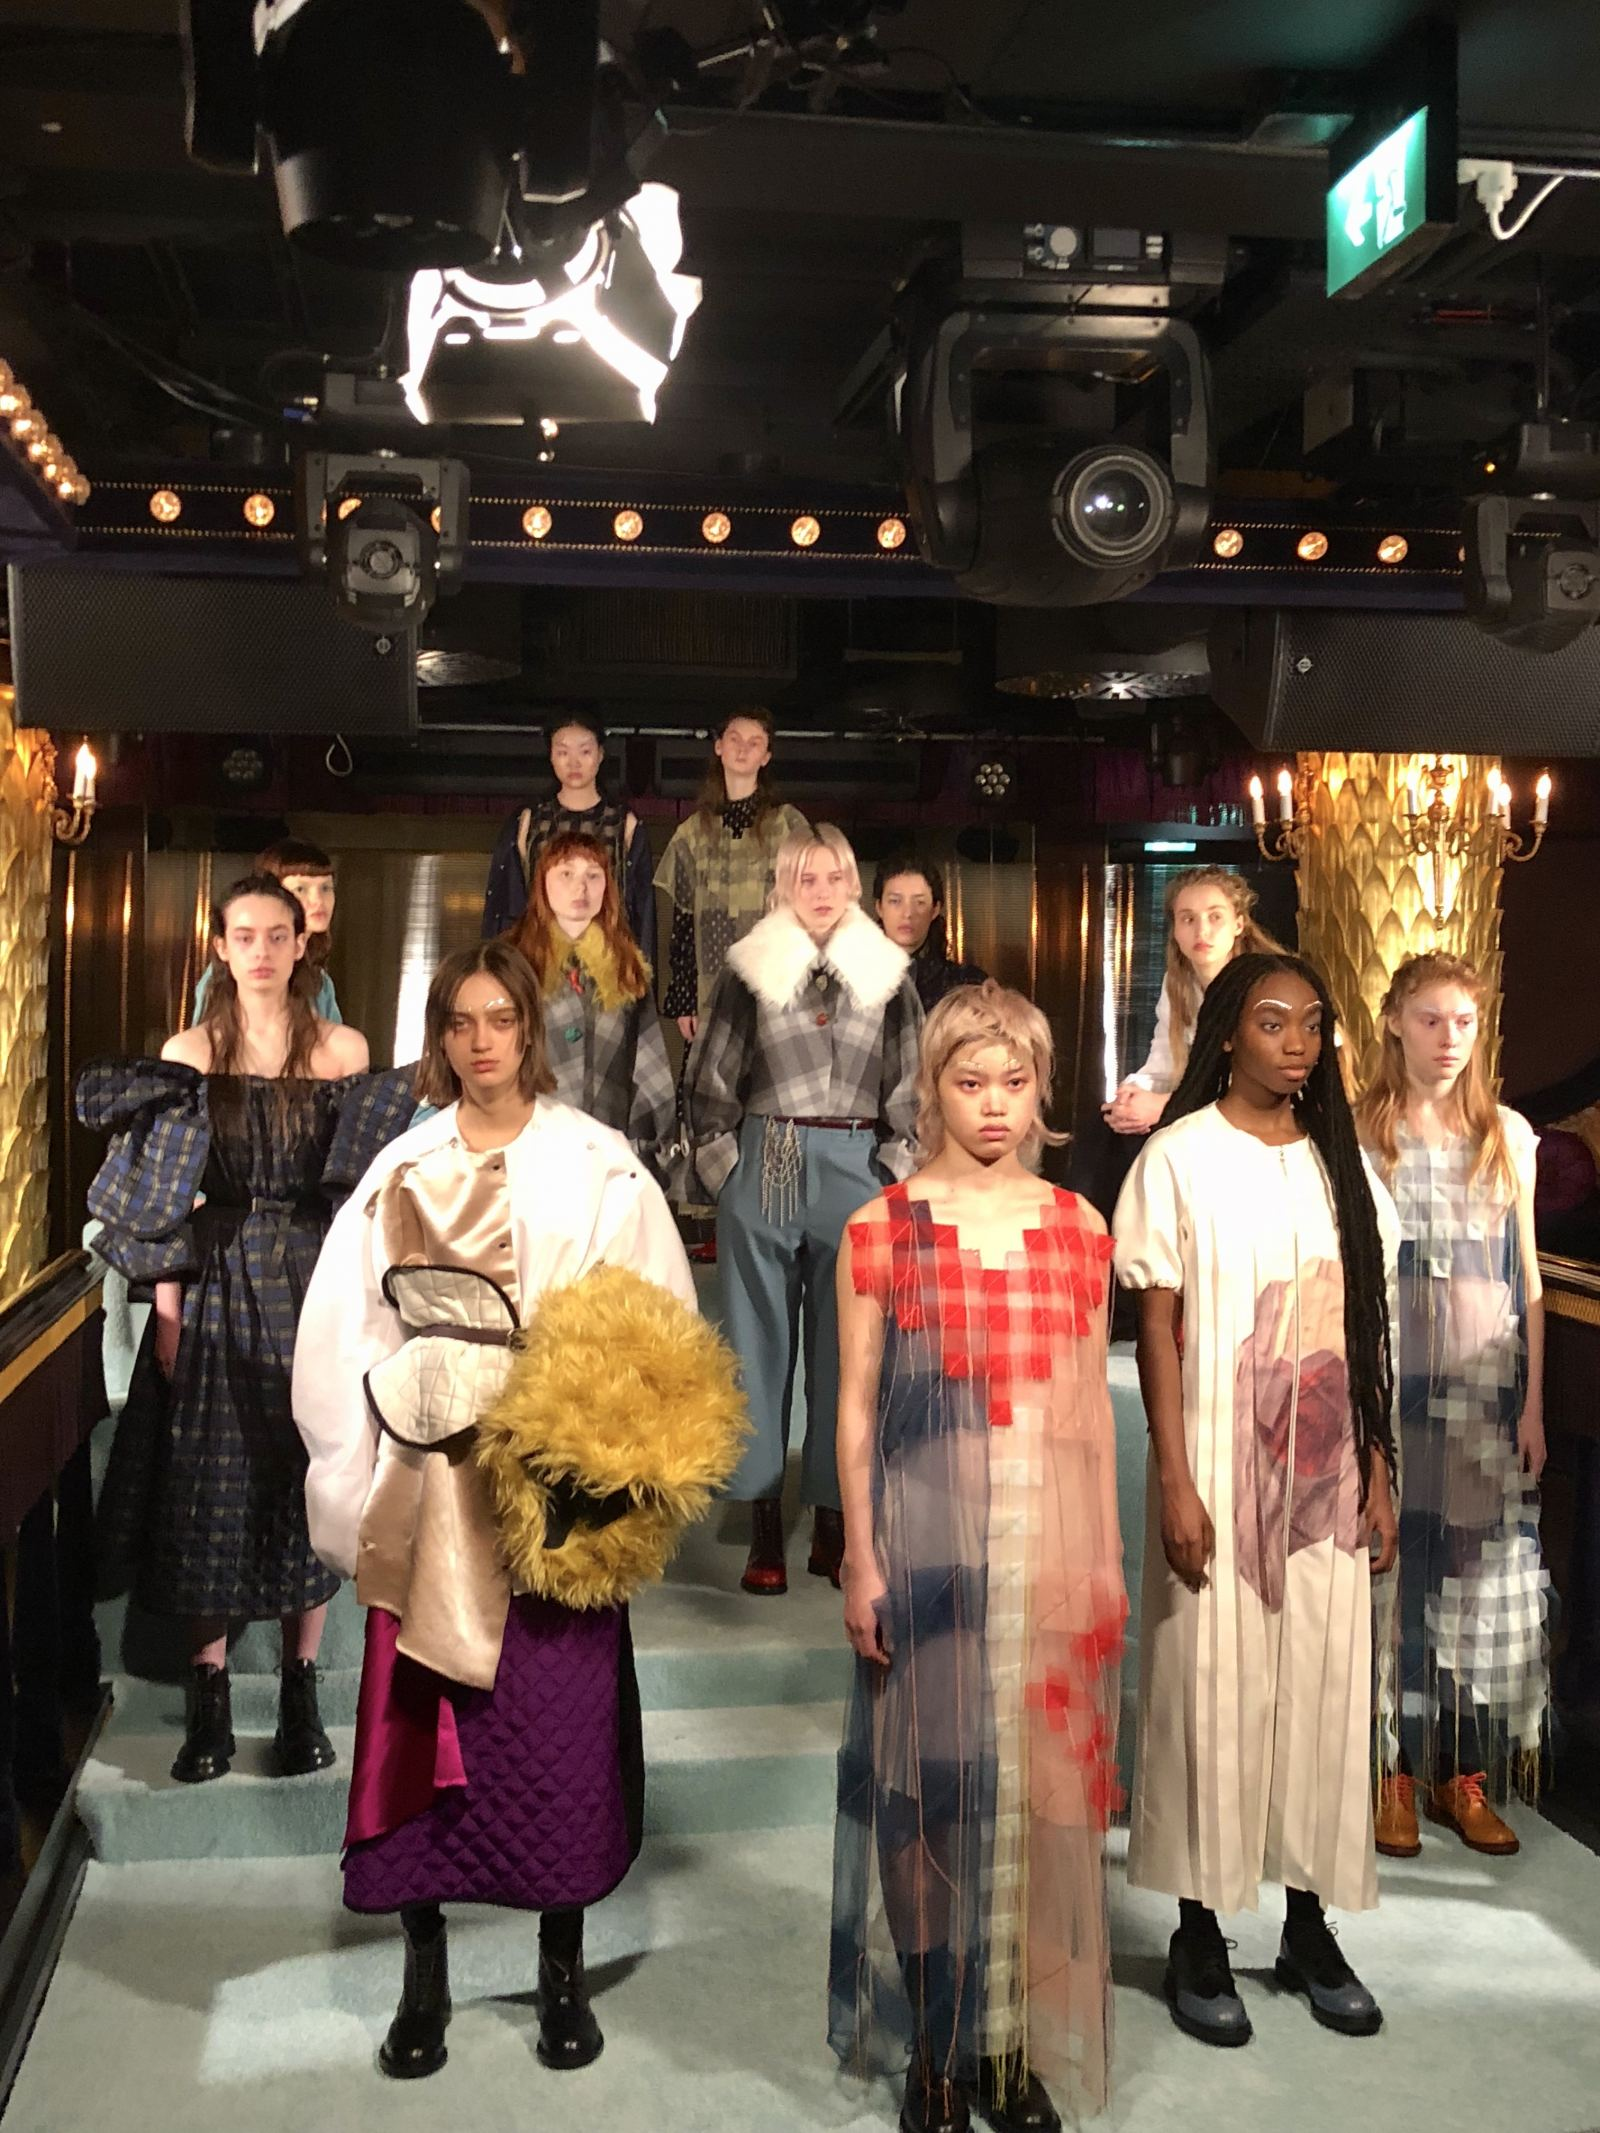 A collective image showing the full minki FW18 presentation for london Fashion Week at the Park Chinois